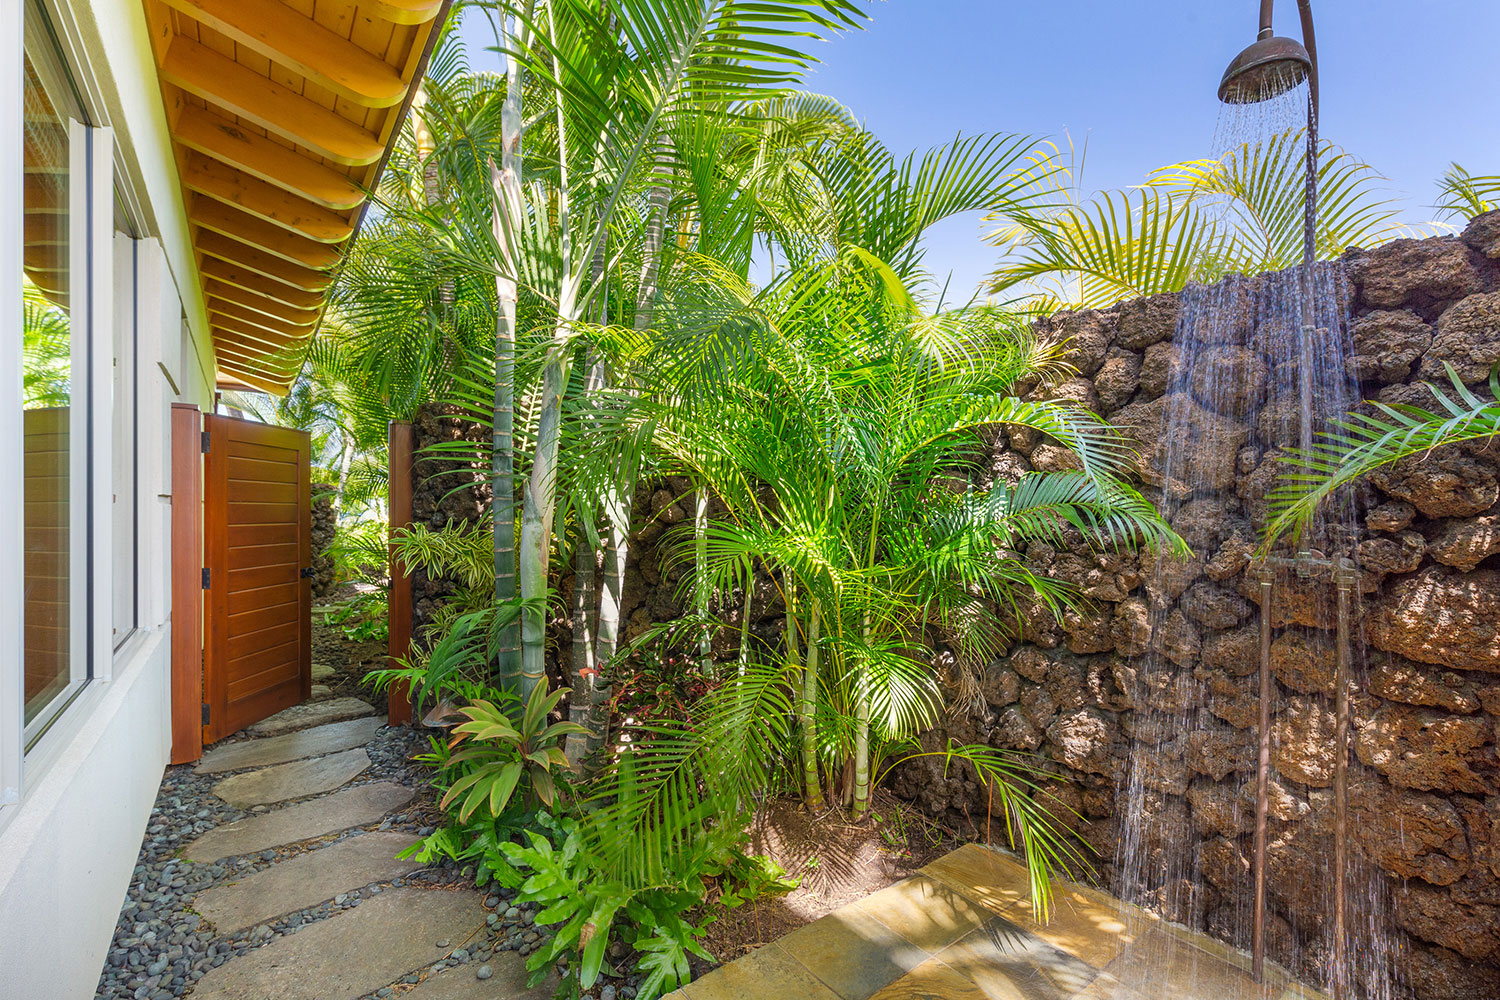 Beautiful  outdoor shower at Maluhia Hale at Hualāla